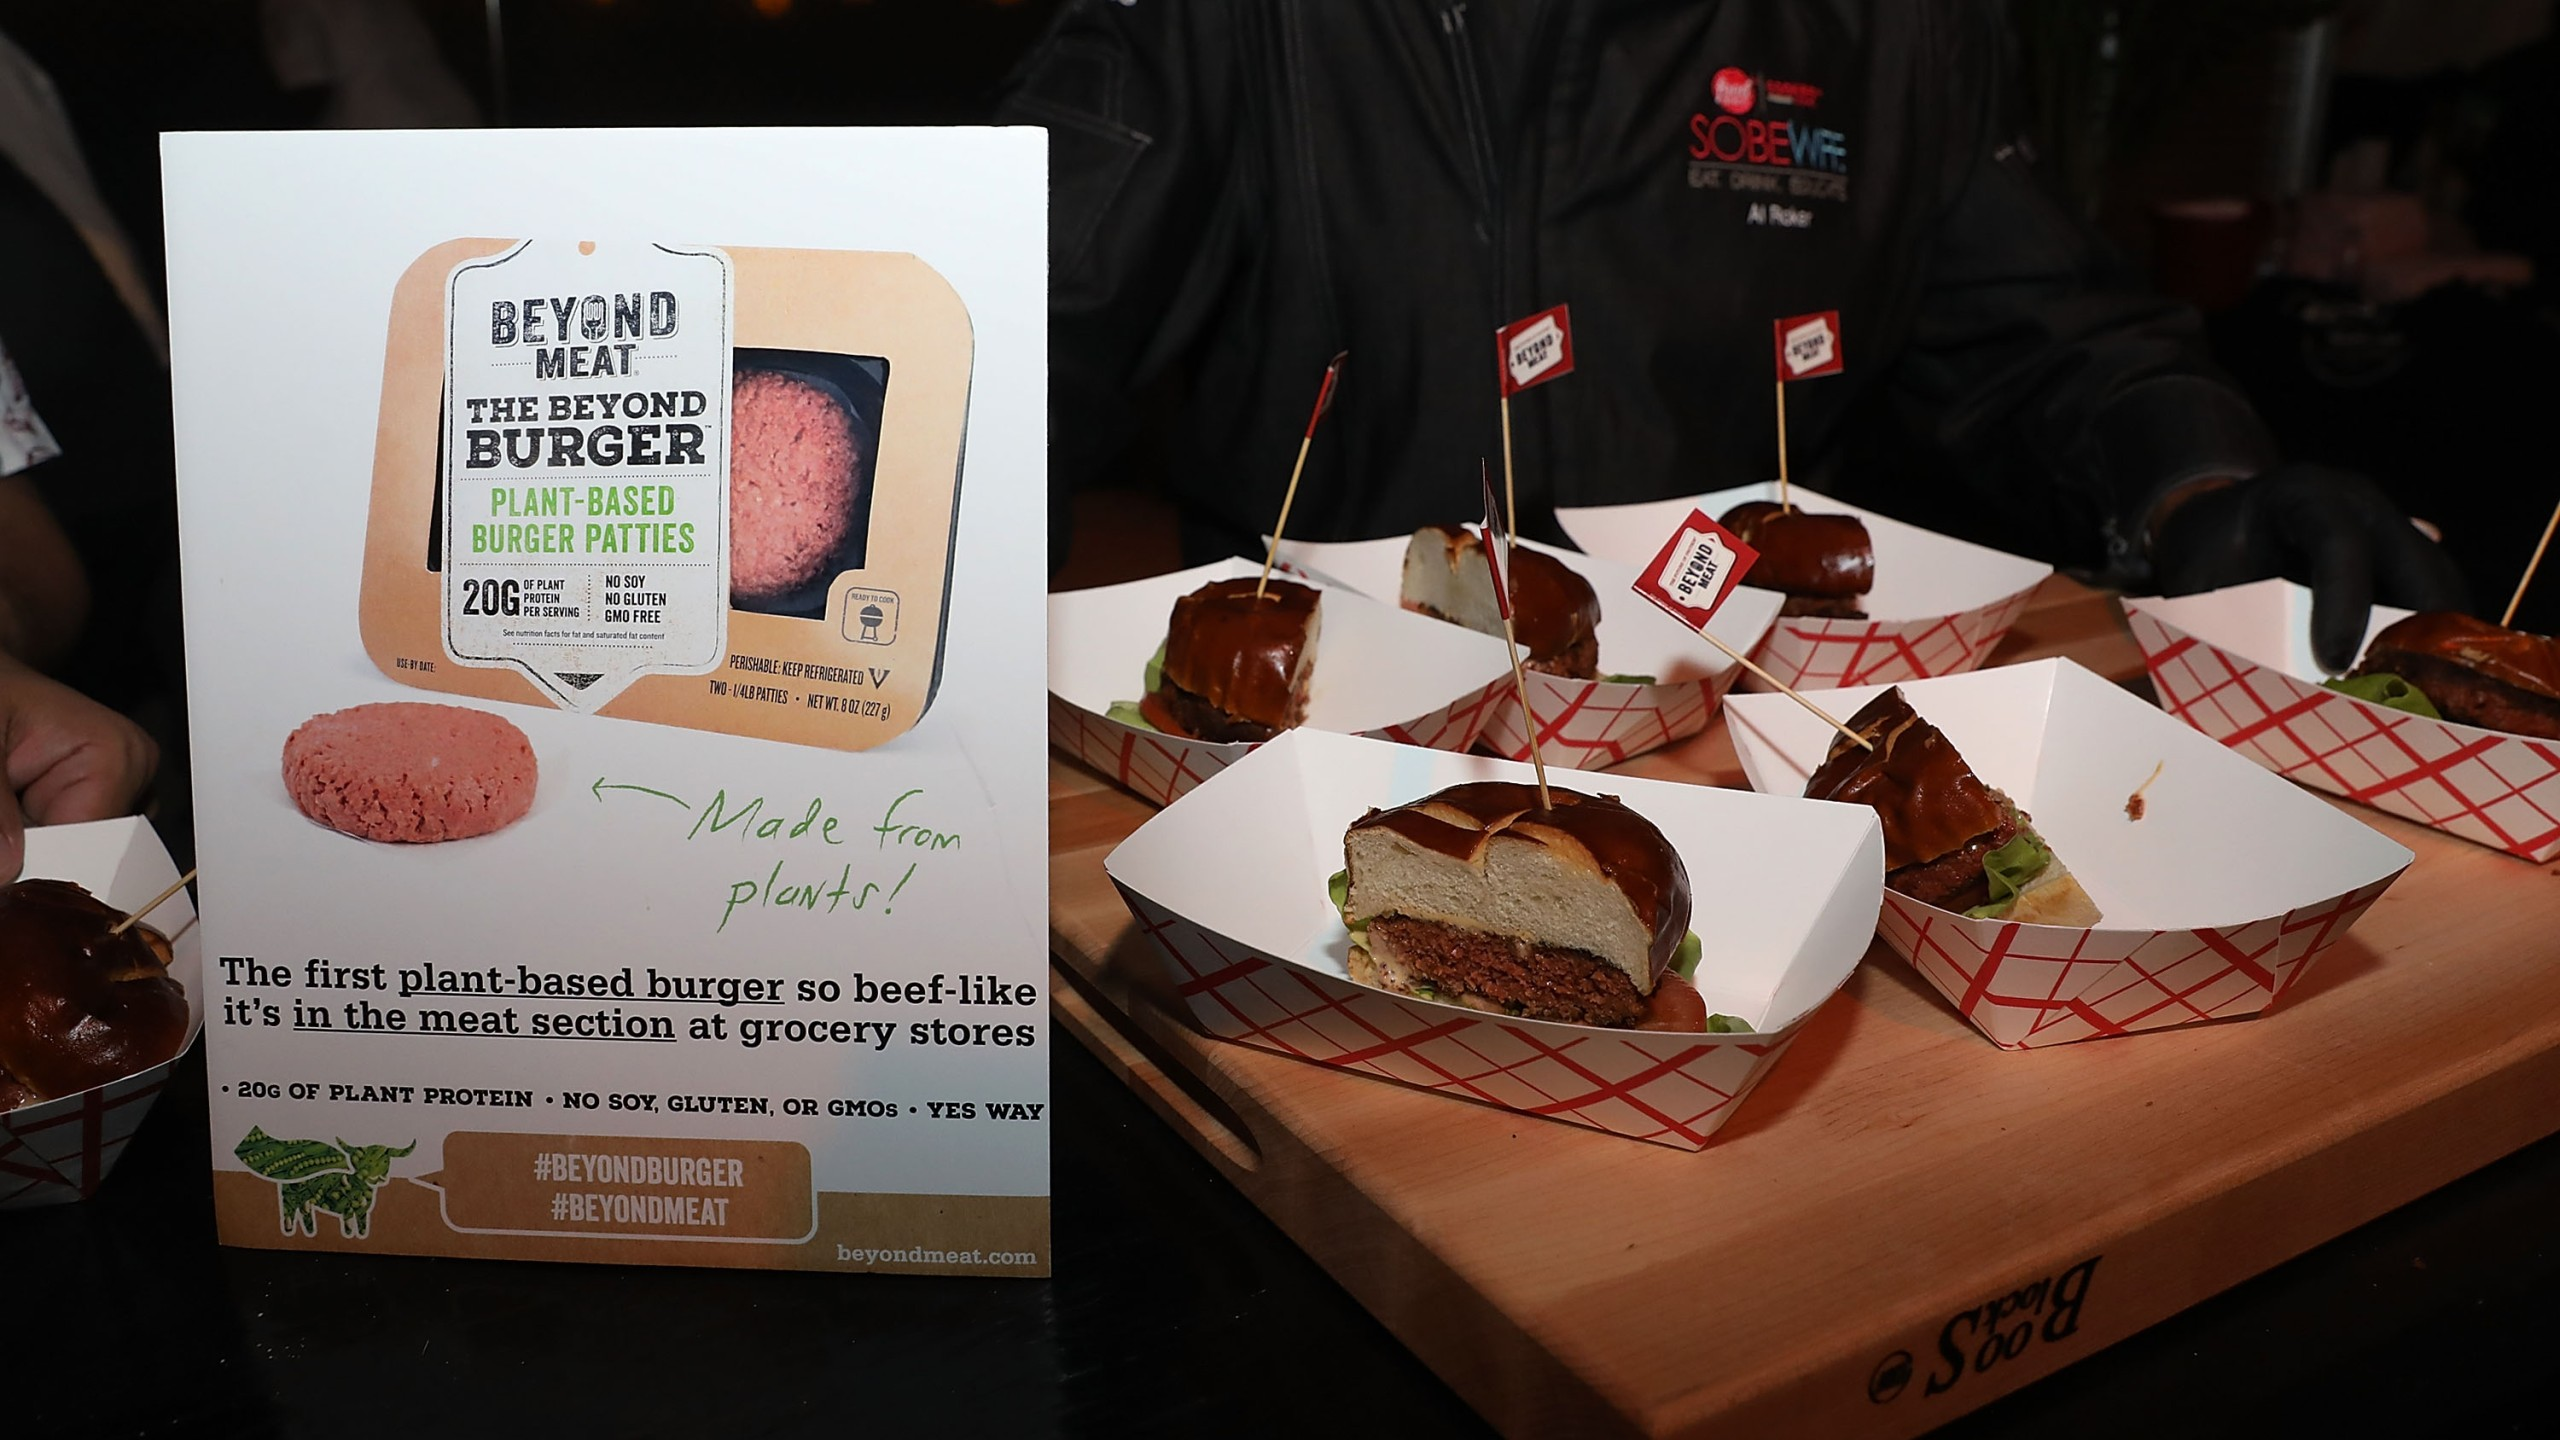 Beyond Meat burgers are displayed at an event in Miami Beach, Florida on Feb. 24, 2017. (Credit: Aaron Davidson/Getty Images for BEYOND MEAT)